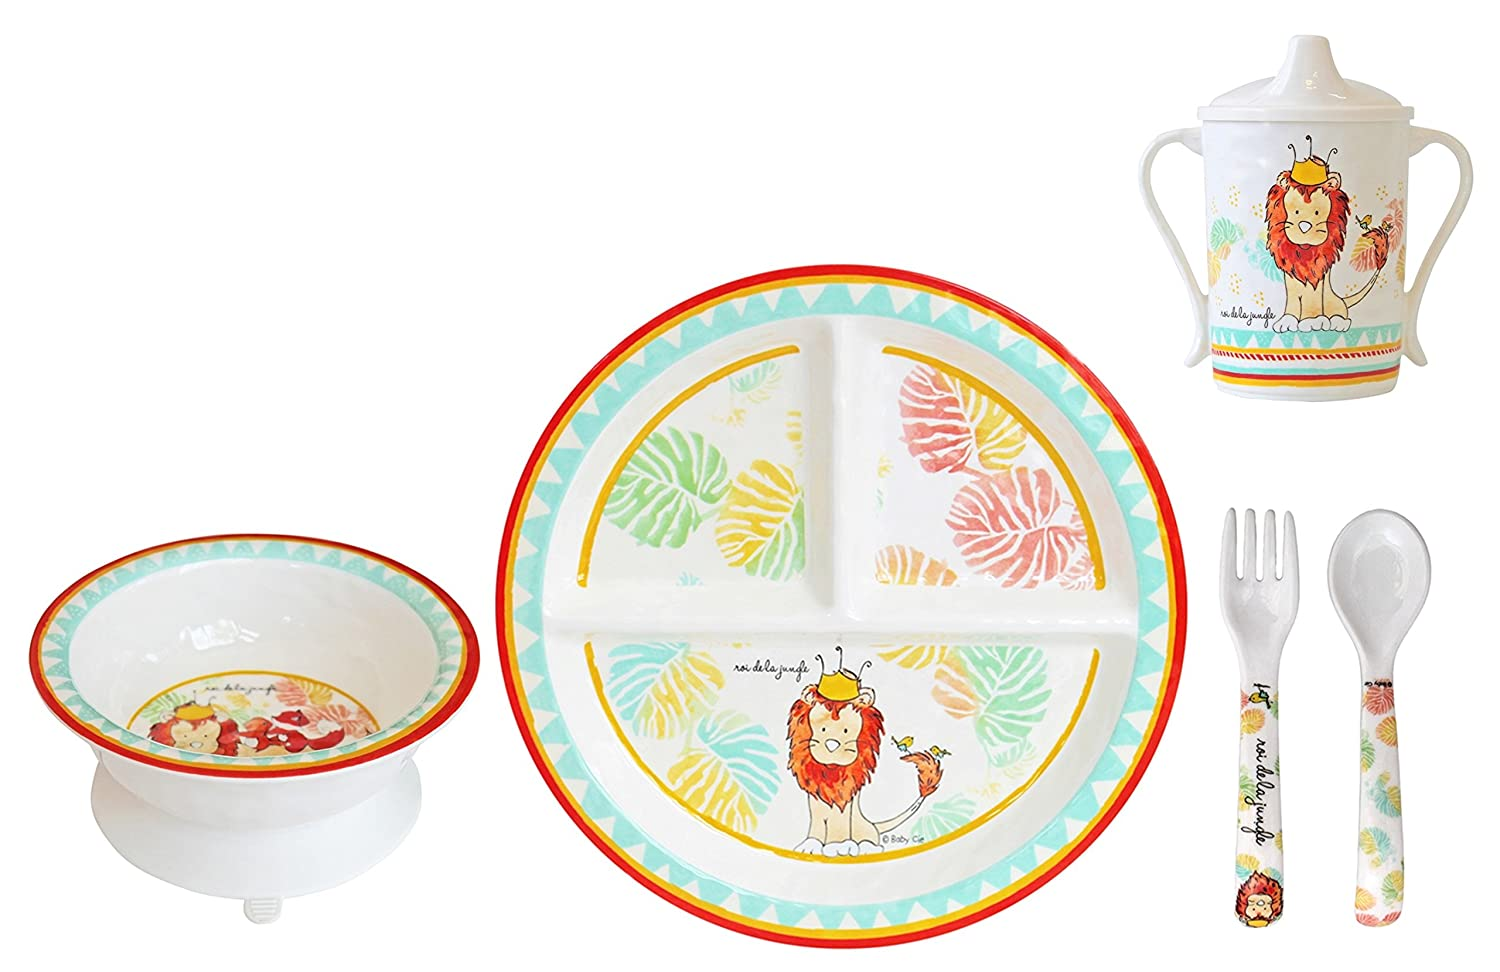 Baby Cie Melamine Plate, Sippy Cup, Bowl, Fork & Spoon, 5 Piece Set - King of The Jungle